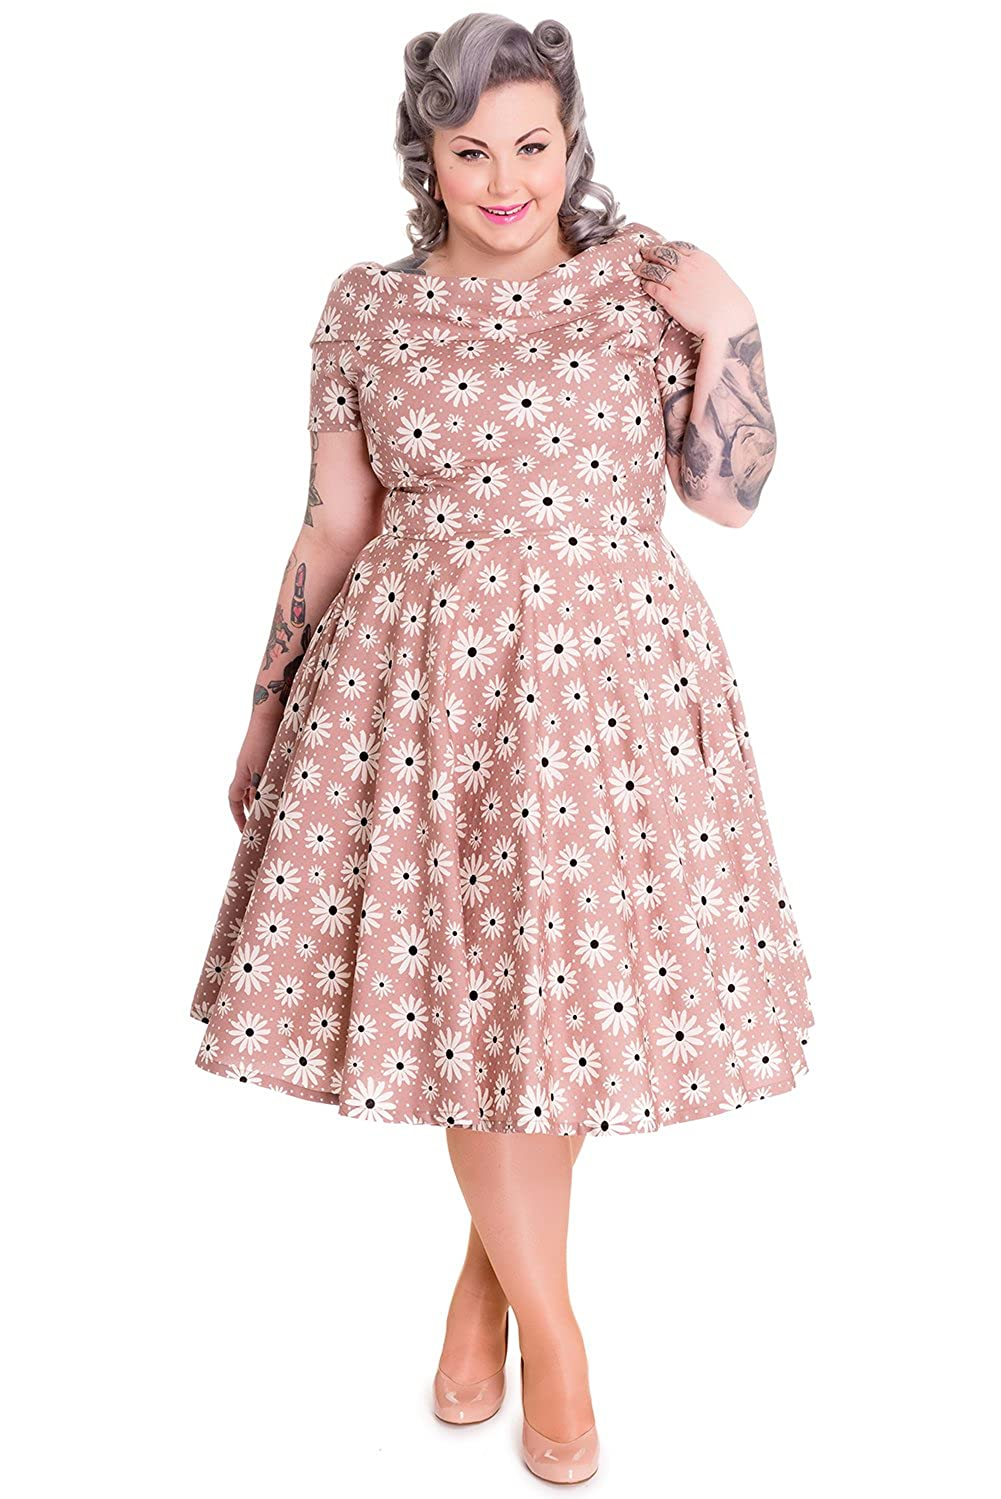 1950s Plus Size Dresses, Swing Dresses Hell Bunny Plus 50s Lovely Lady Daisy Floral Polka Dot Party Dress Latte Brown $78.00 AT vintagedancer.com